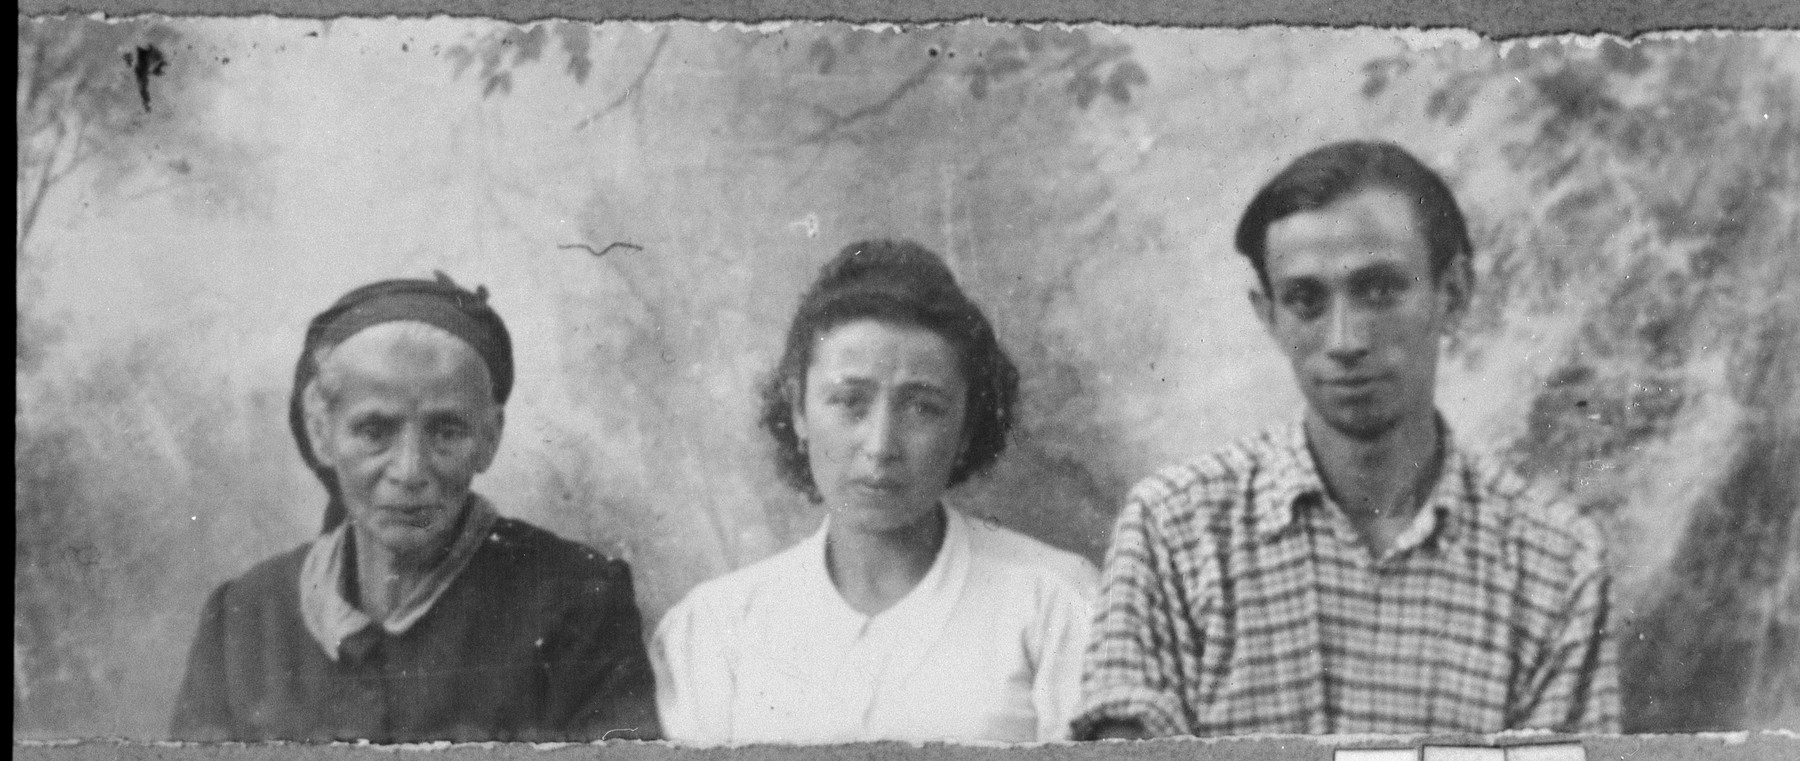 Portrait of Miriam Talvi [wife of Isak Talvi], Shabetai Talvi, son of Isak, and Rosa Talvi, daughter of Isak.  Shabetai was a laborer.  The lived at Drinska 99 in Bitola.